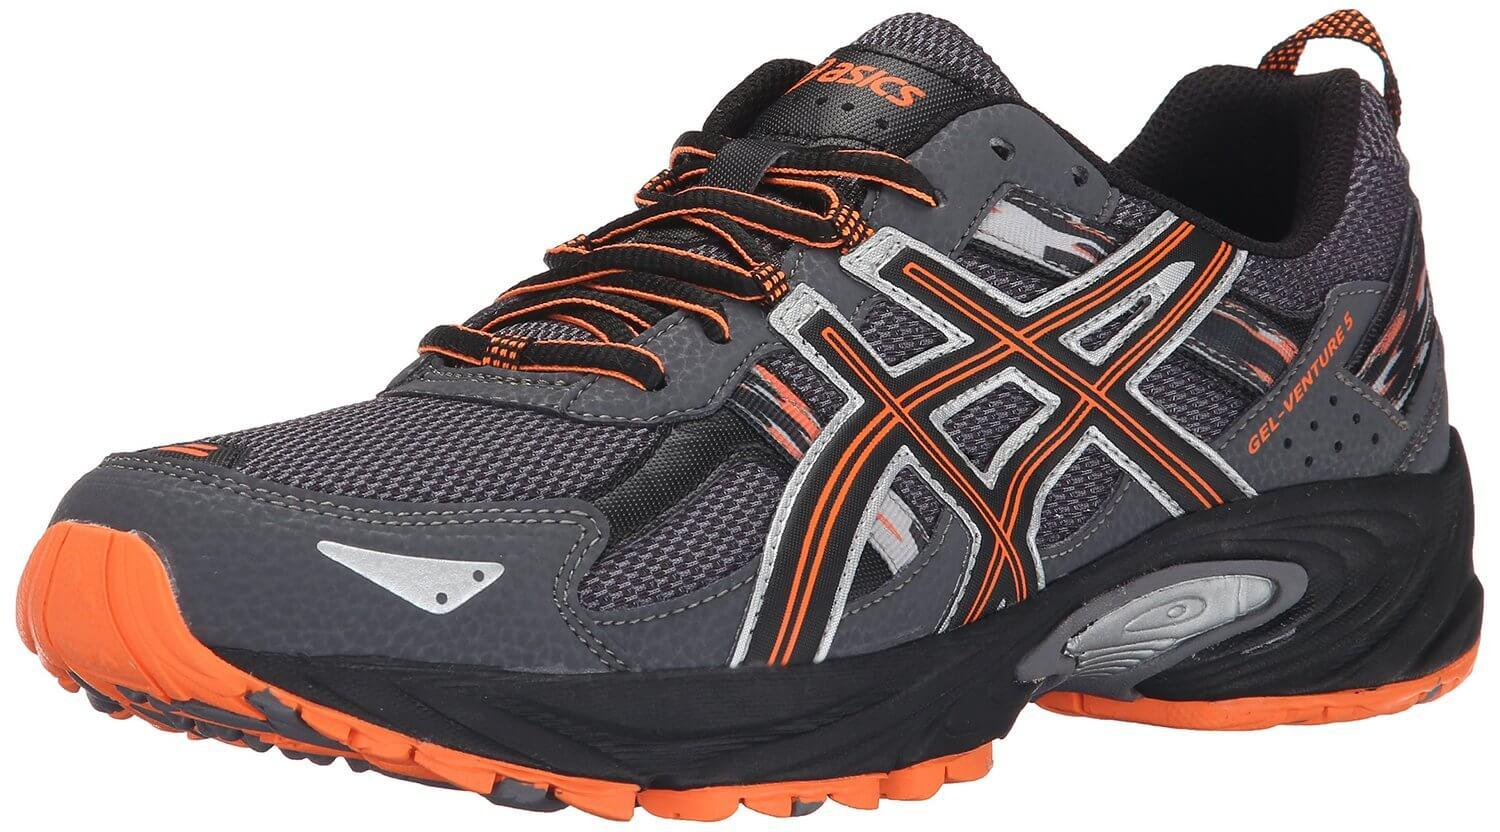 the Asics Gel Venture 5 is a low-cut trail running shoe that offers a good amount of protection and reliable traction